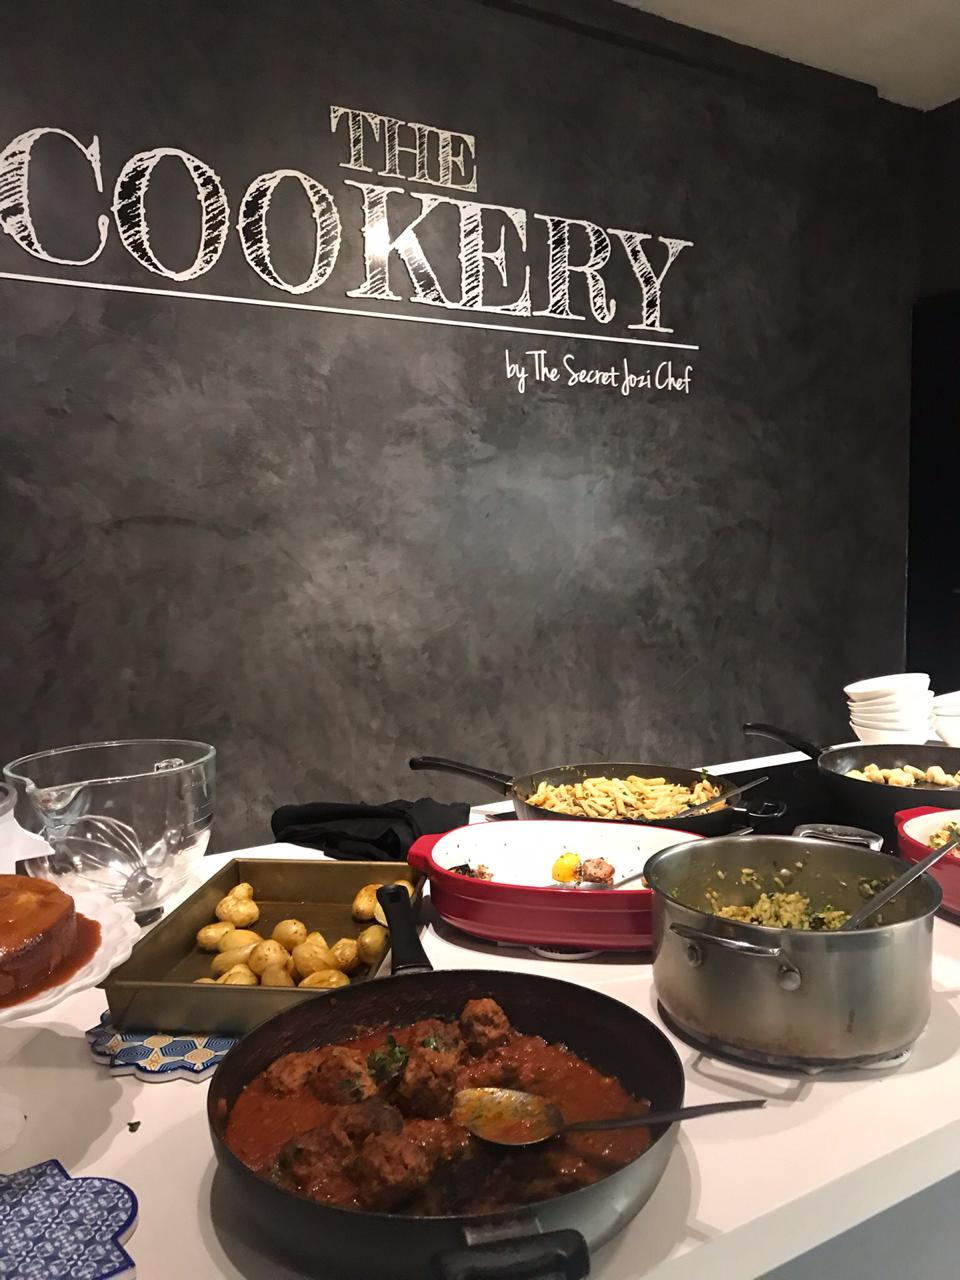 Visiting The Cookery at The Colony 8